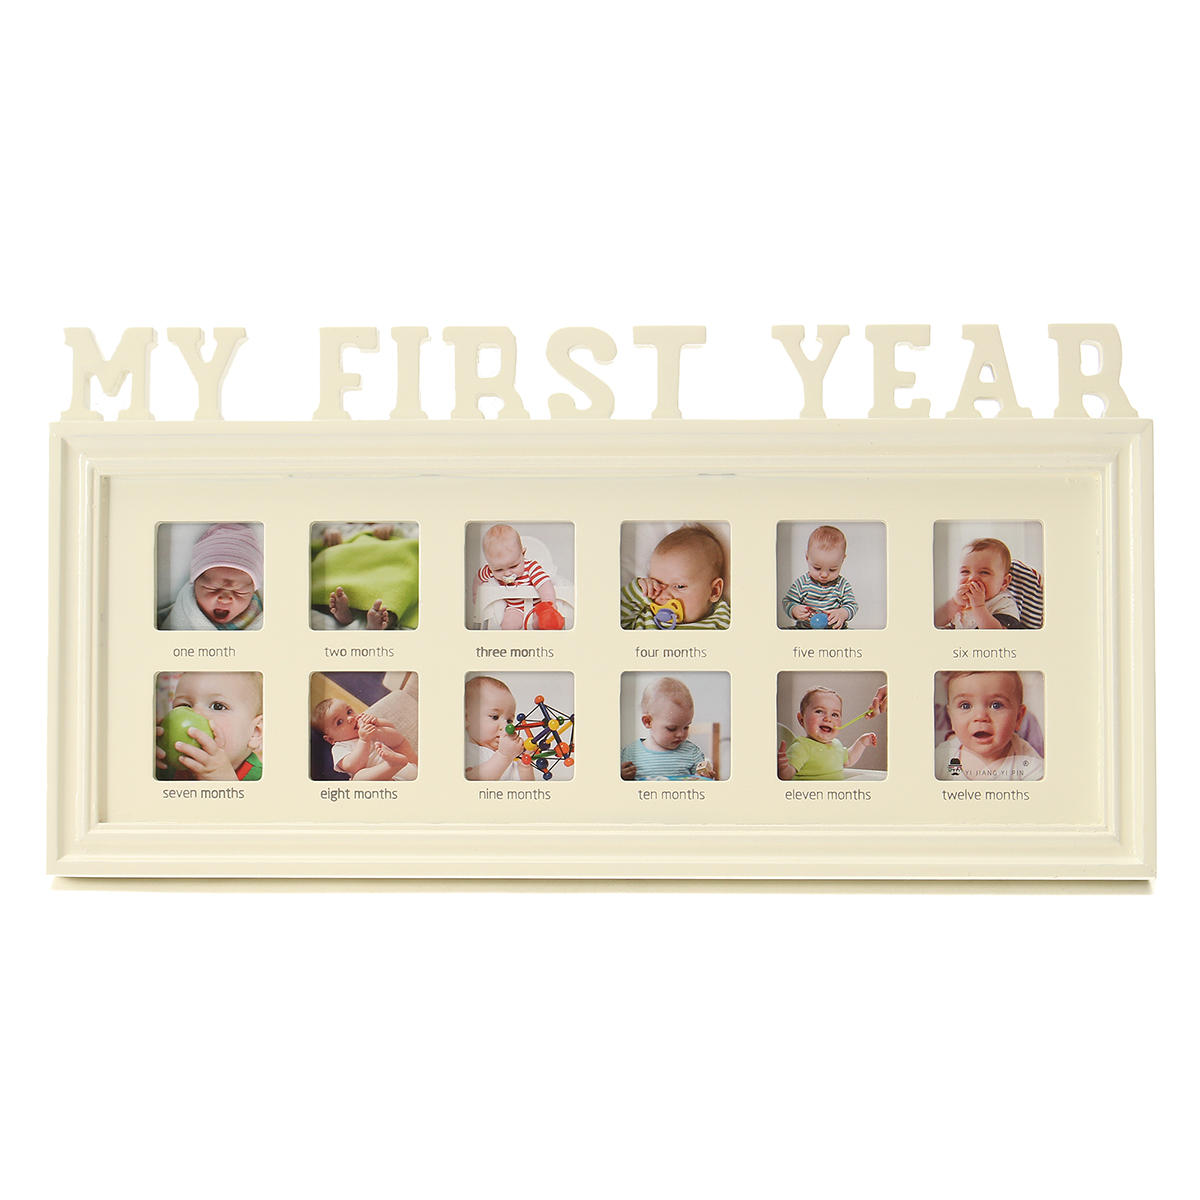 MY FIRST YEAR Photo Frame 12 Months Baby Multi Picture Display Anniversary Gift